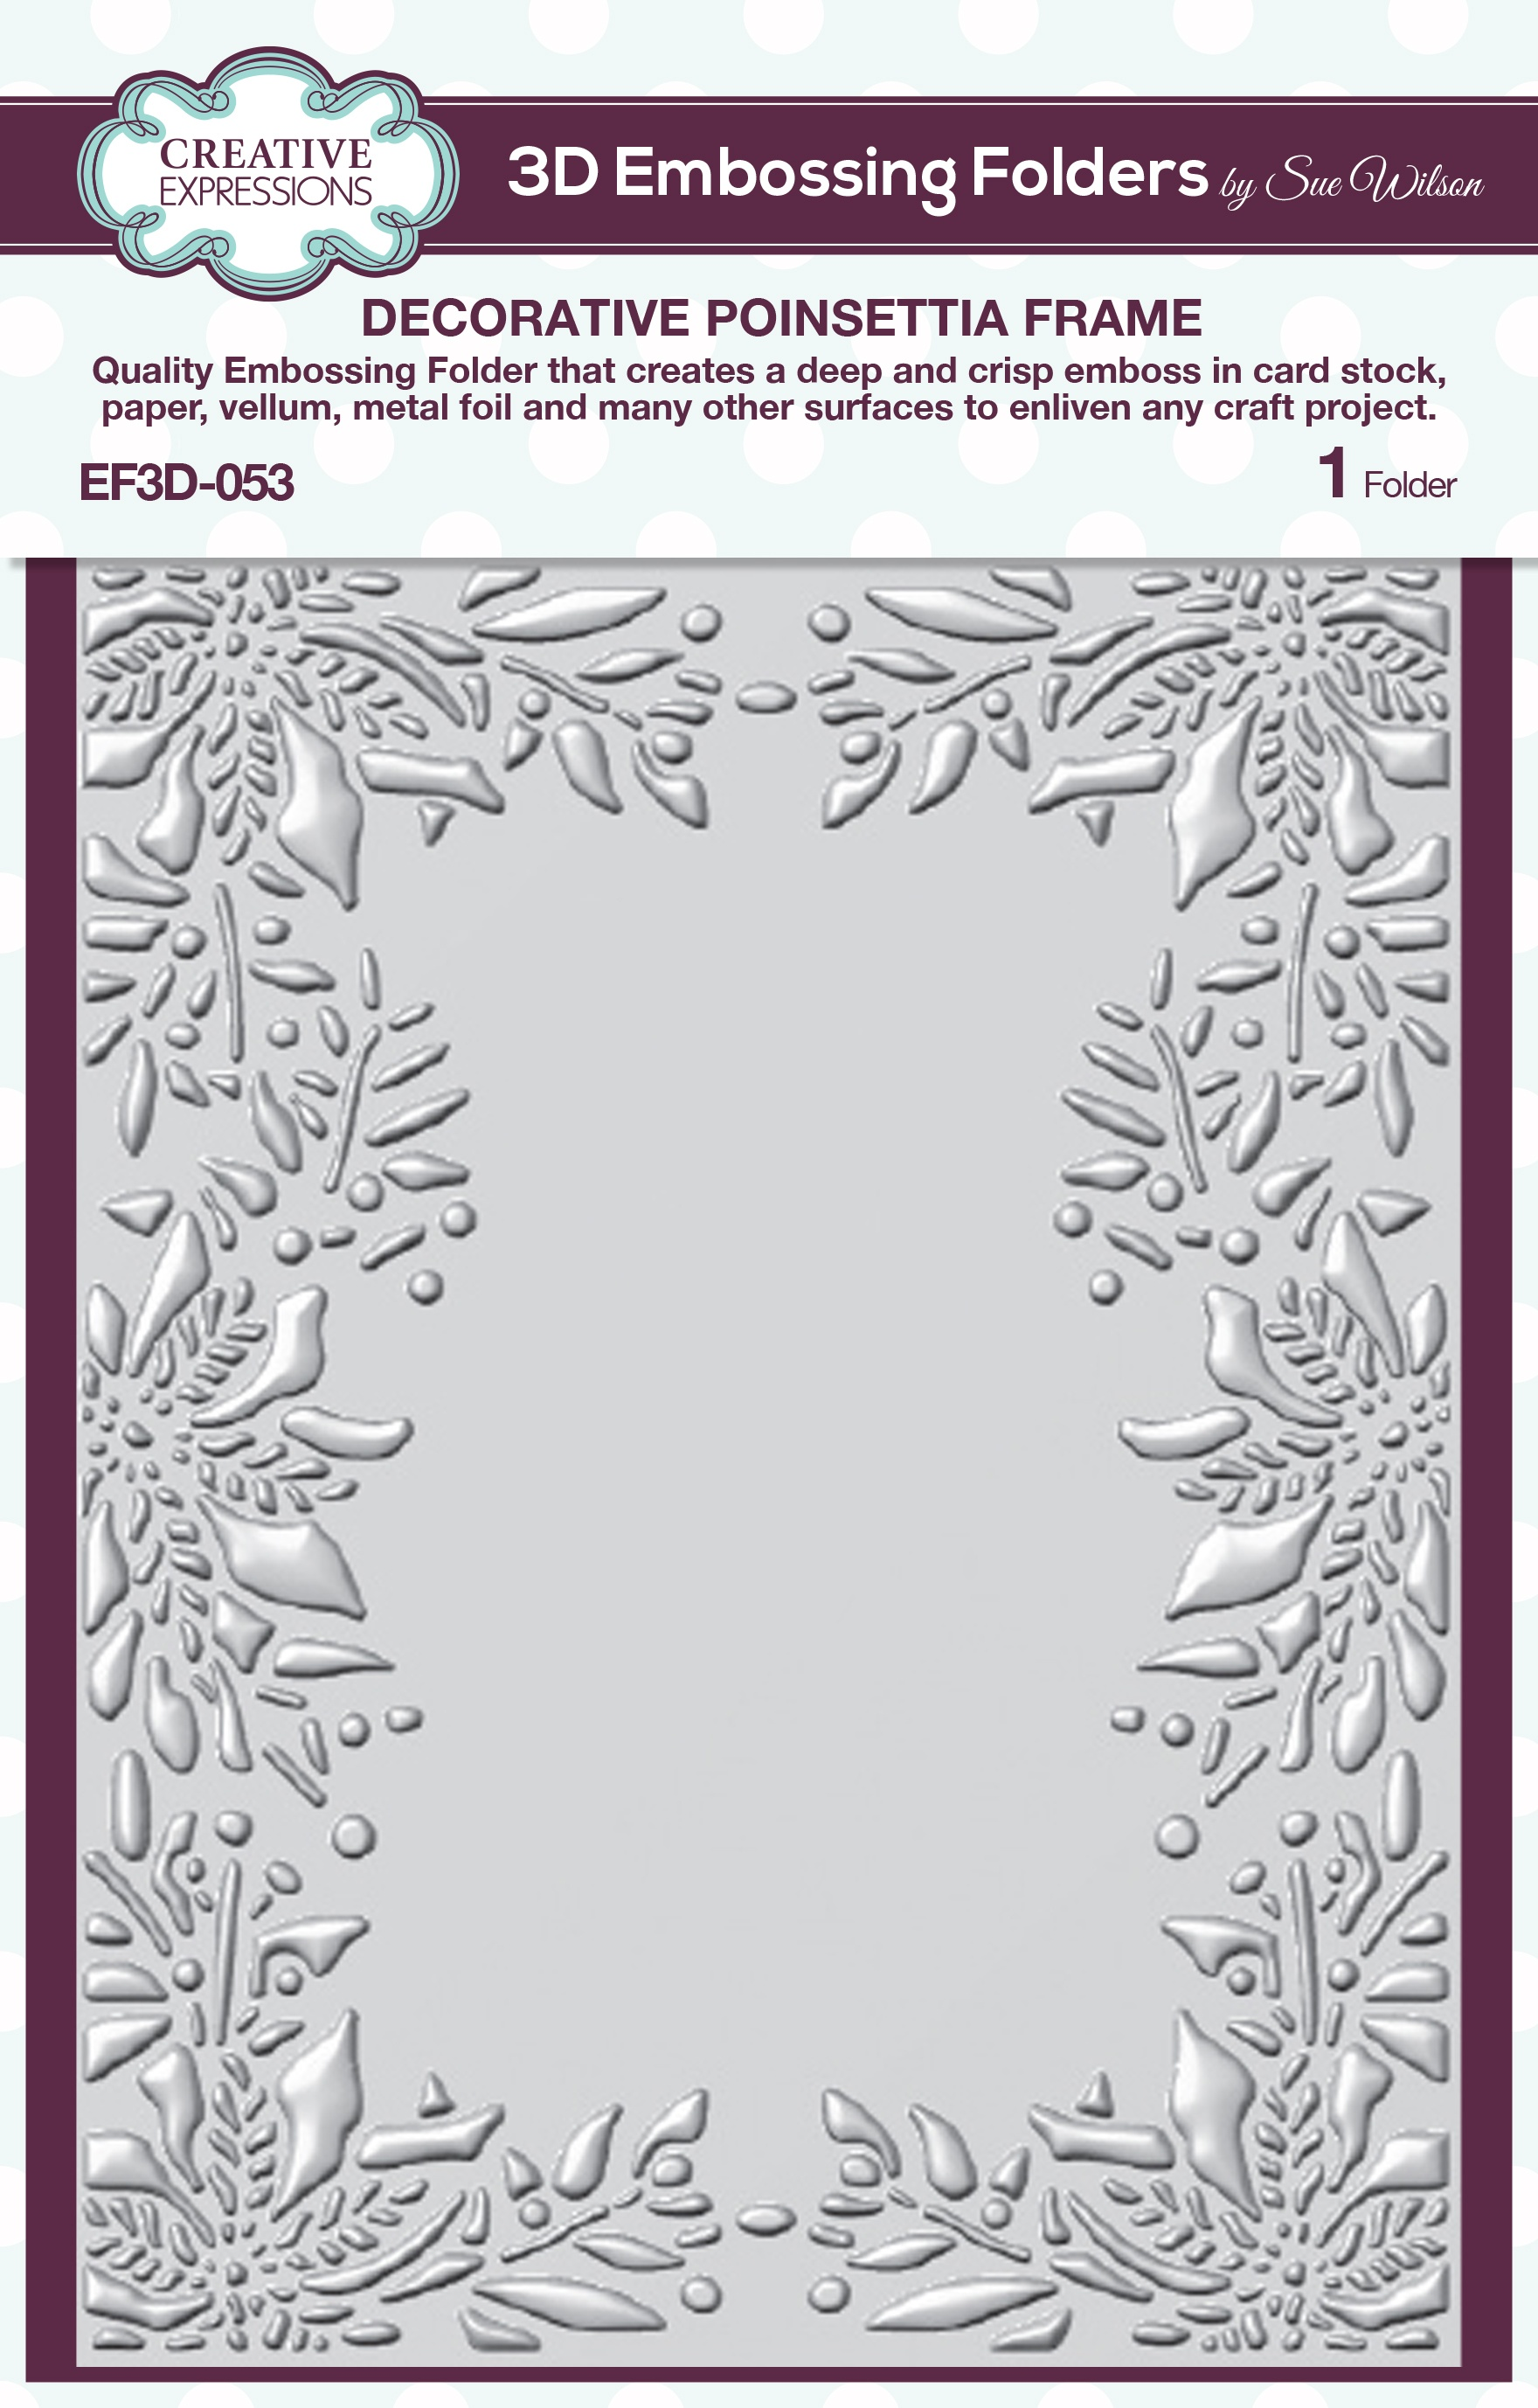 Creative Expressions 3D Embossing Folder 5.75X7.5-Poinsettia Frame